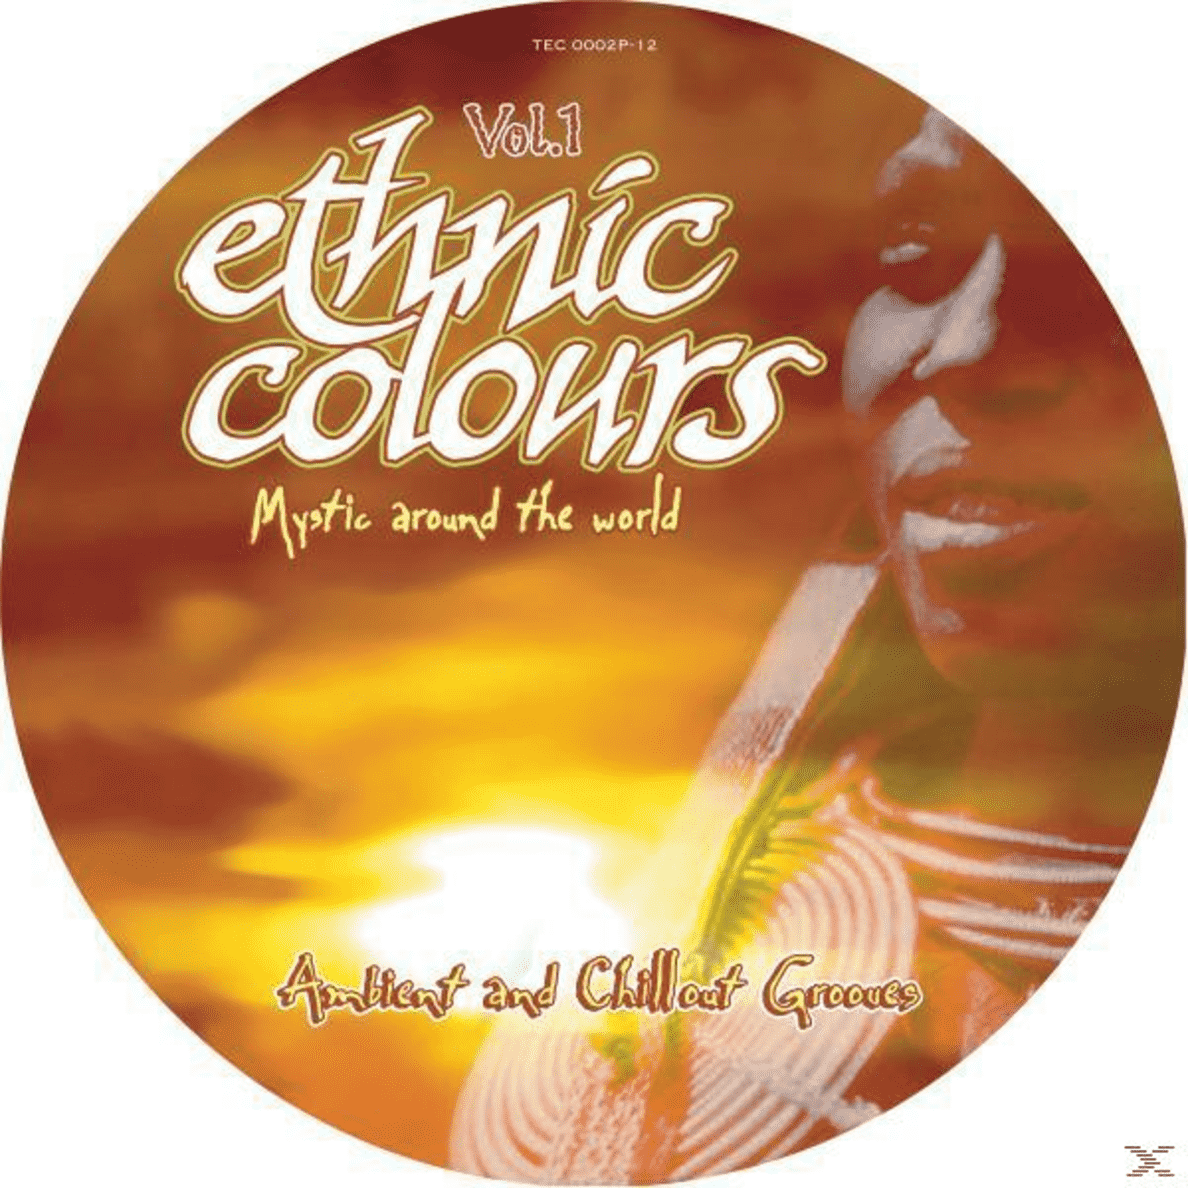 Mystic Around The World Ethnic Colours auf Vinyl